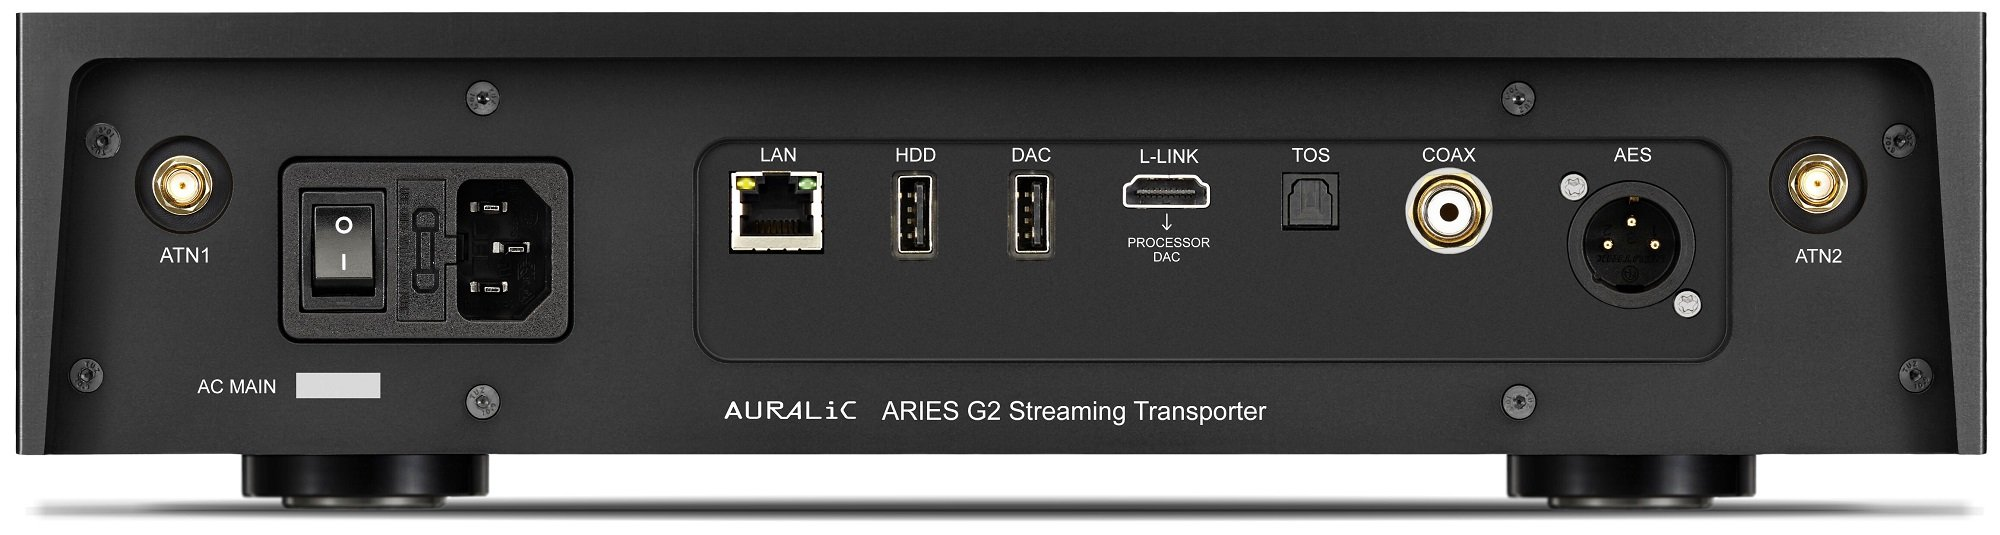 AURALiC ARIES G2 Ultimate wireless Streamer for your DAC by AURALiC (Image #3)